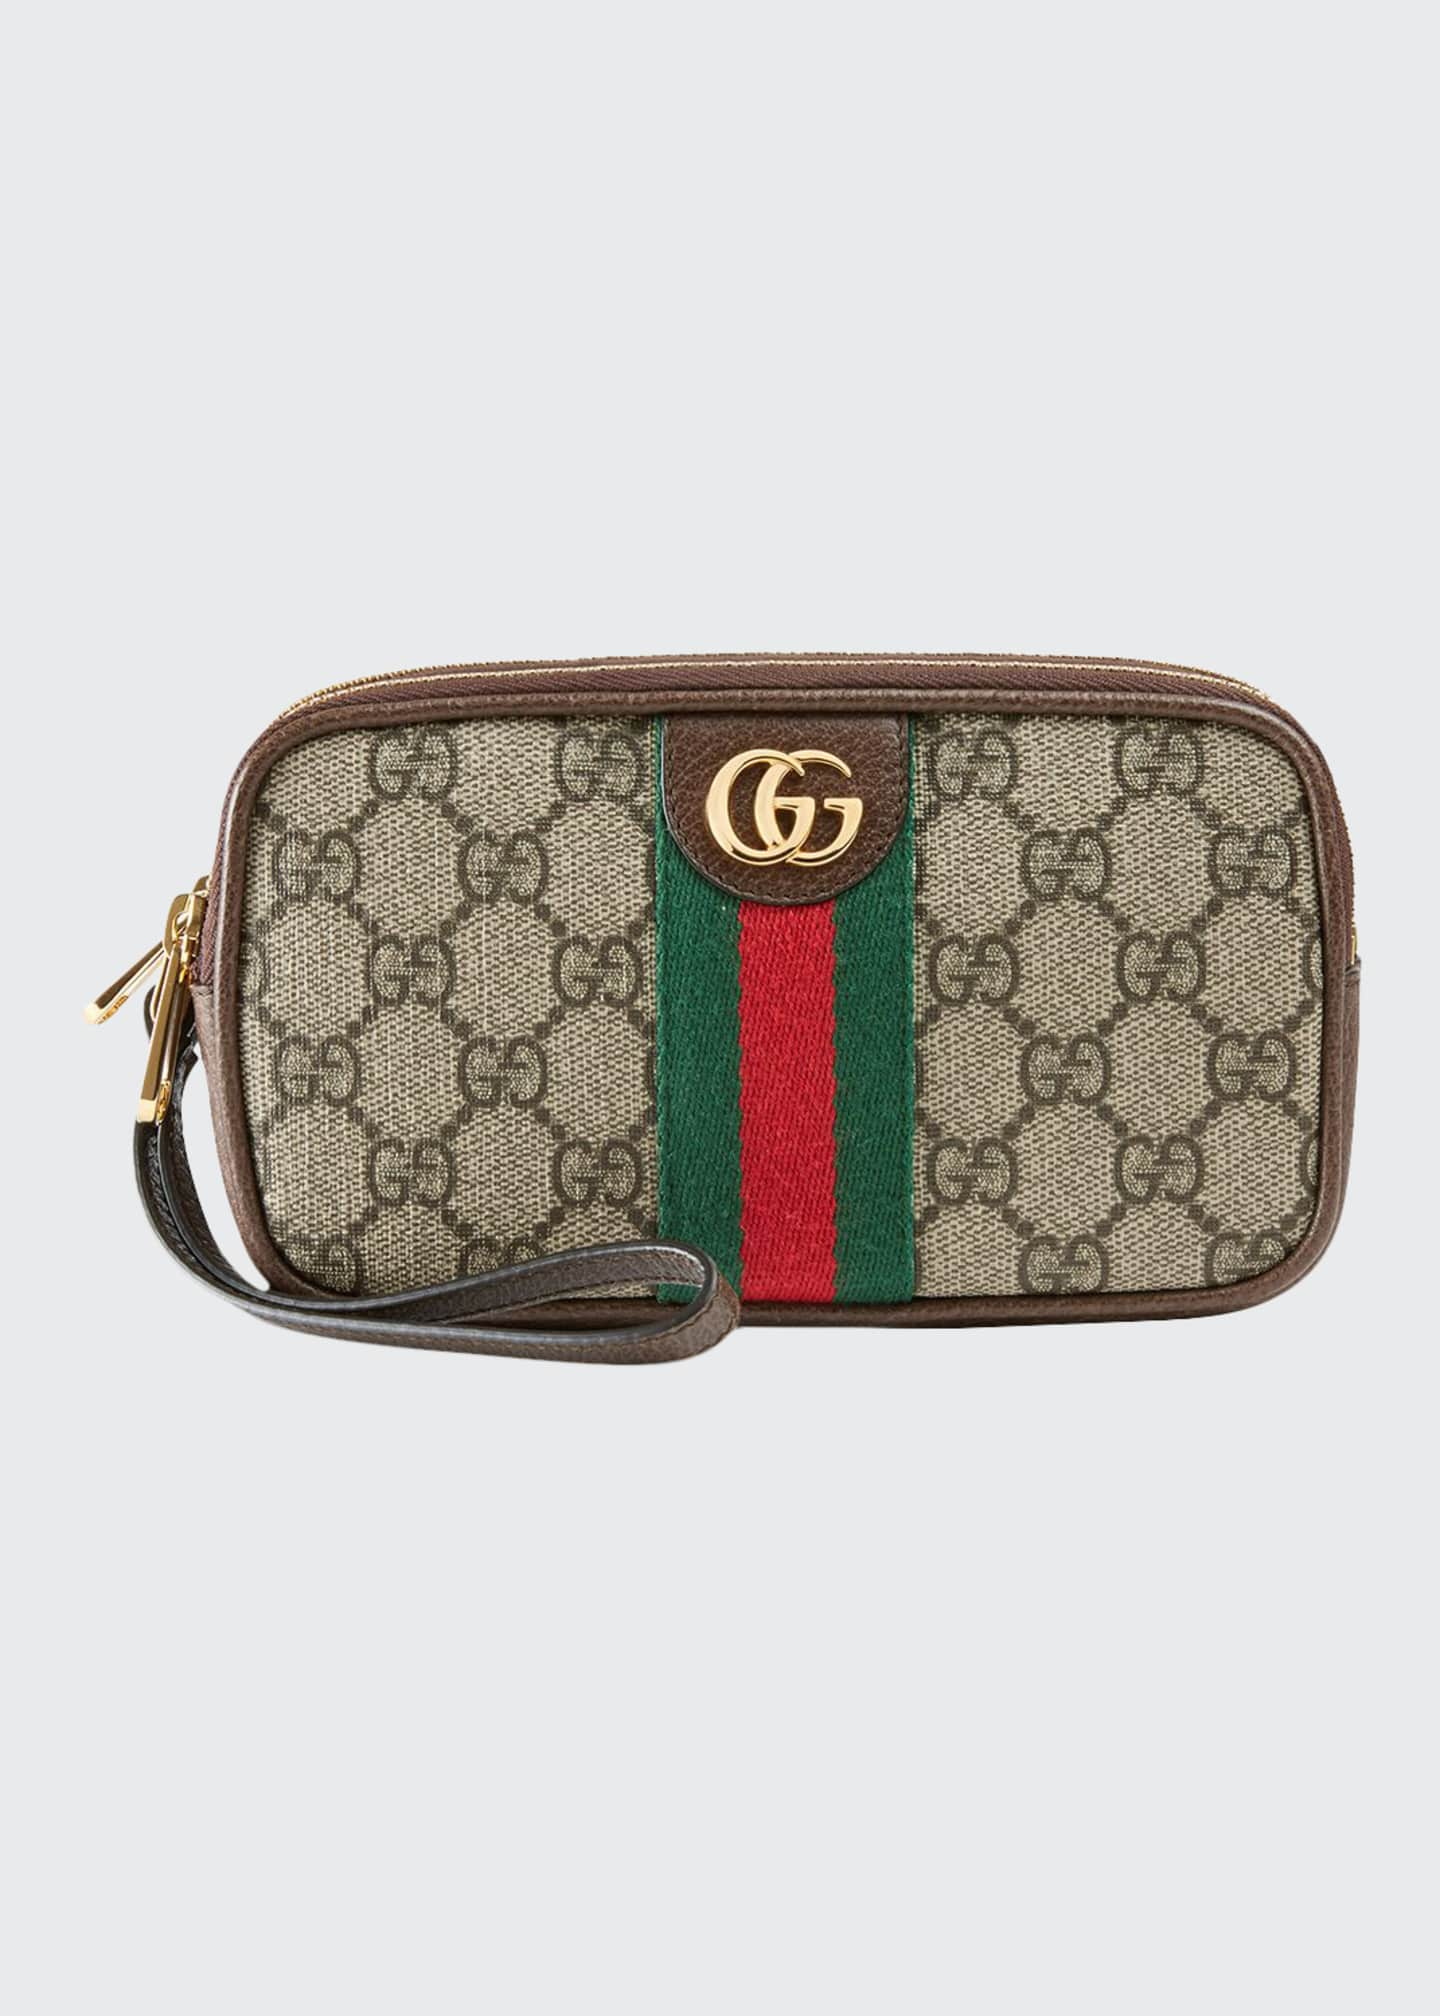 Gucci Ophidia Fabric Zip Top Wristlet